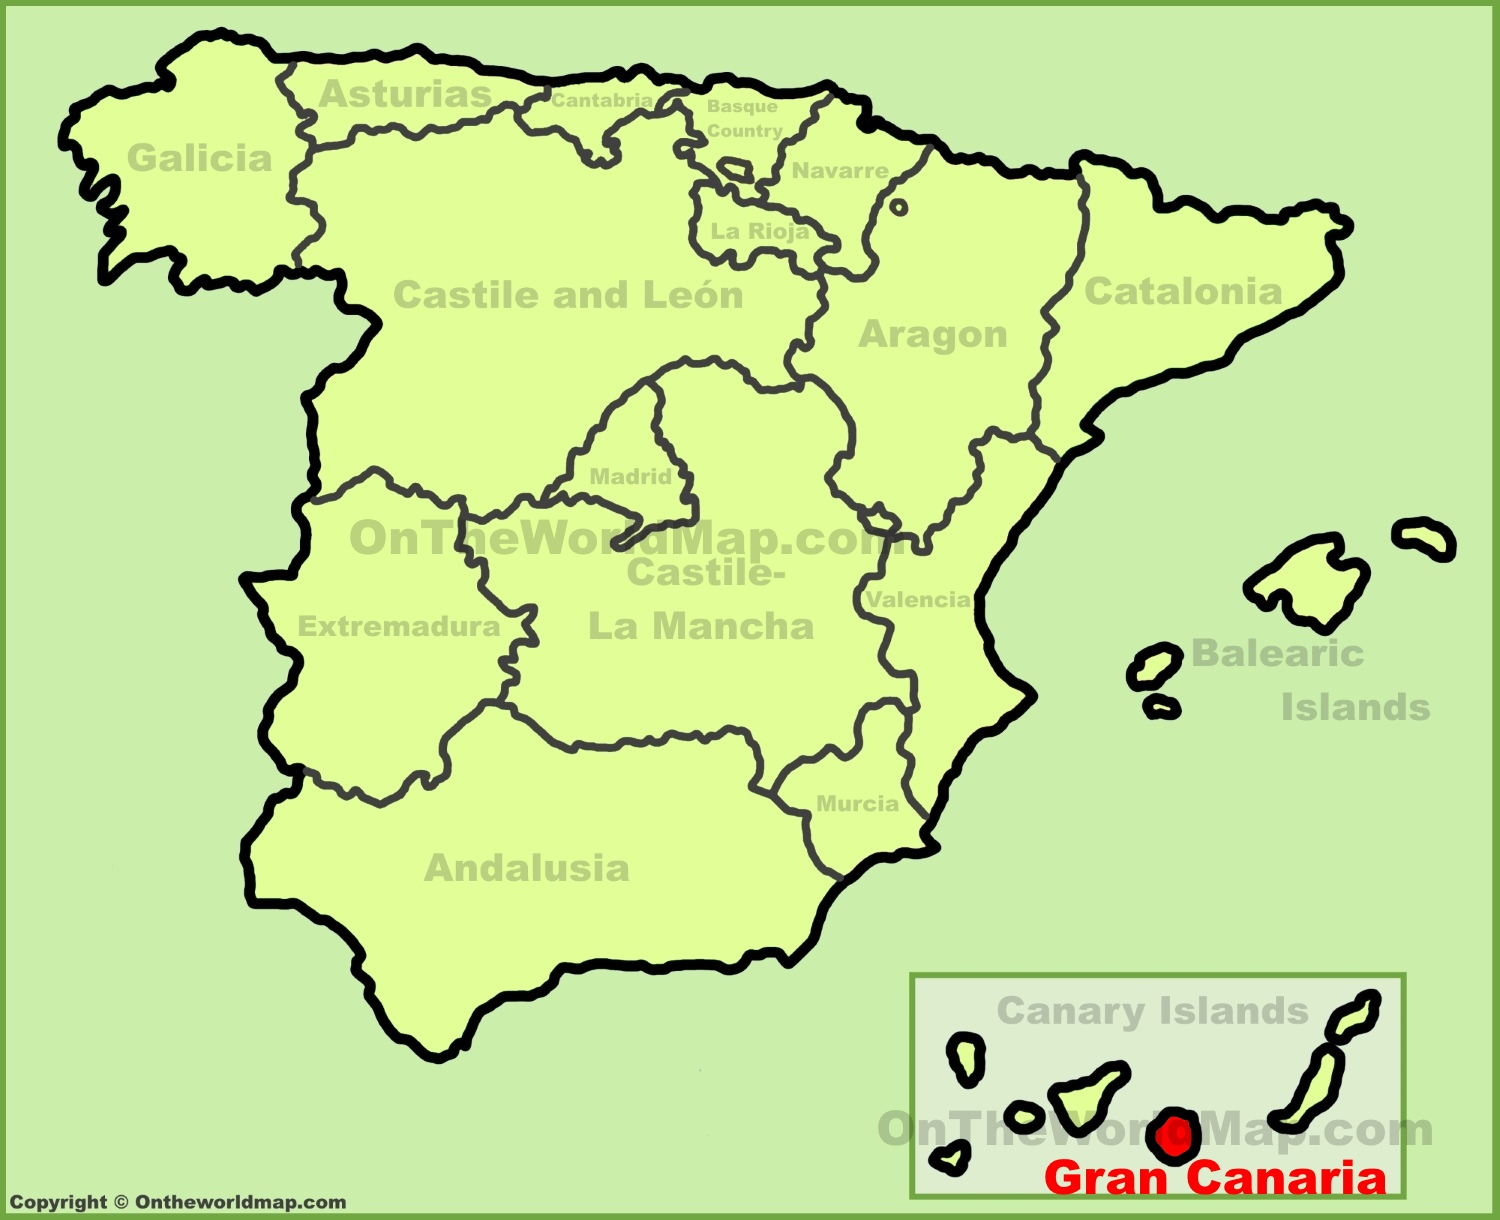 Map Of Spain Gran Canaria.Gran Canaria Location On The Spain Map